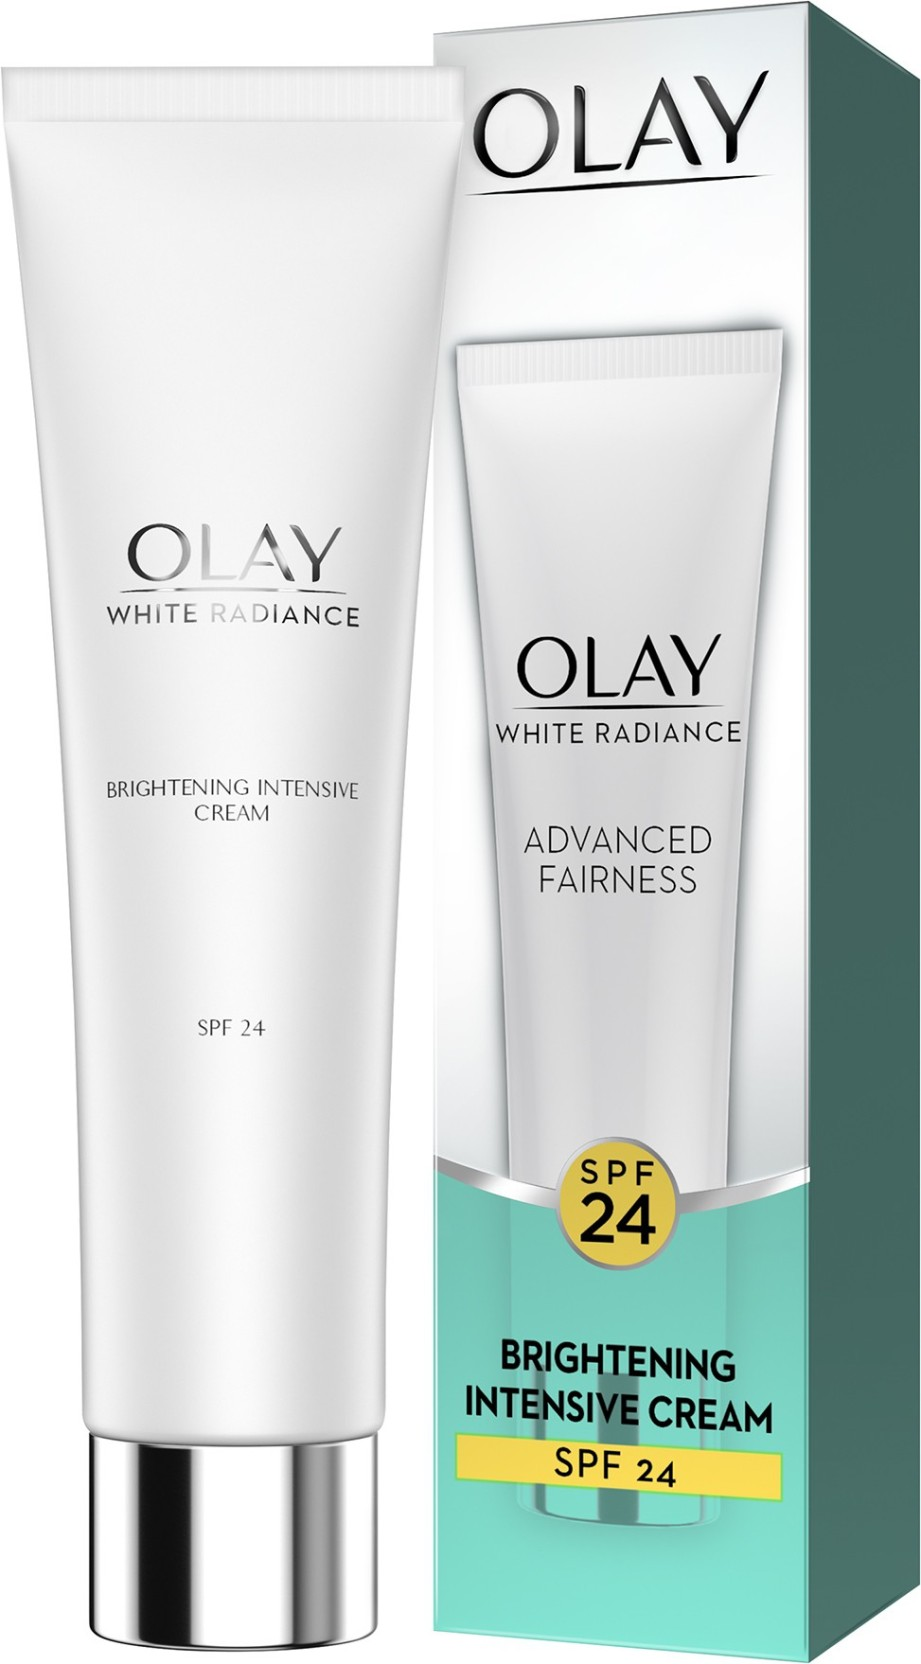 Olay White Radiance Advanced Fairness Brightening Intensive Cream Total Effects Day Normal Spf 15 8g 24 Add To Cart